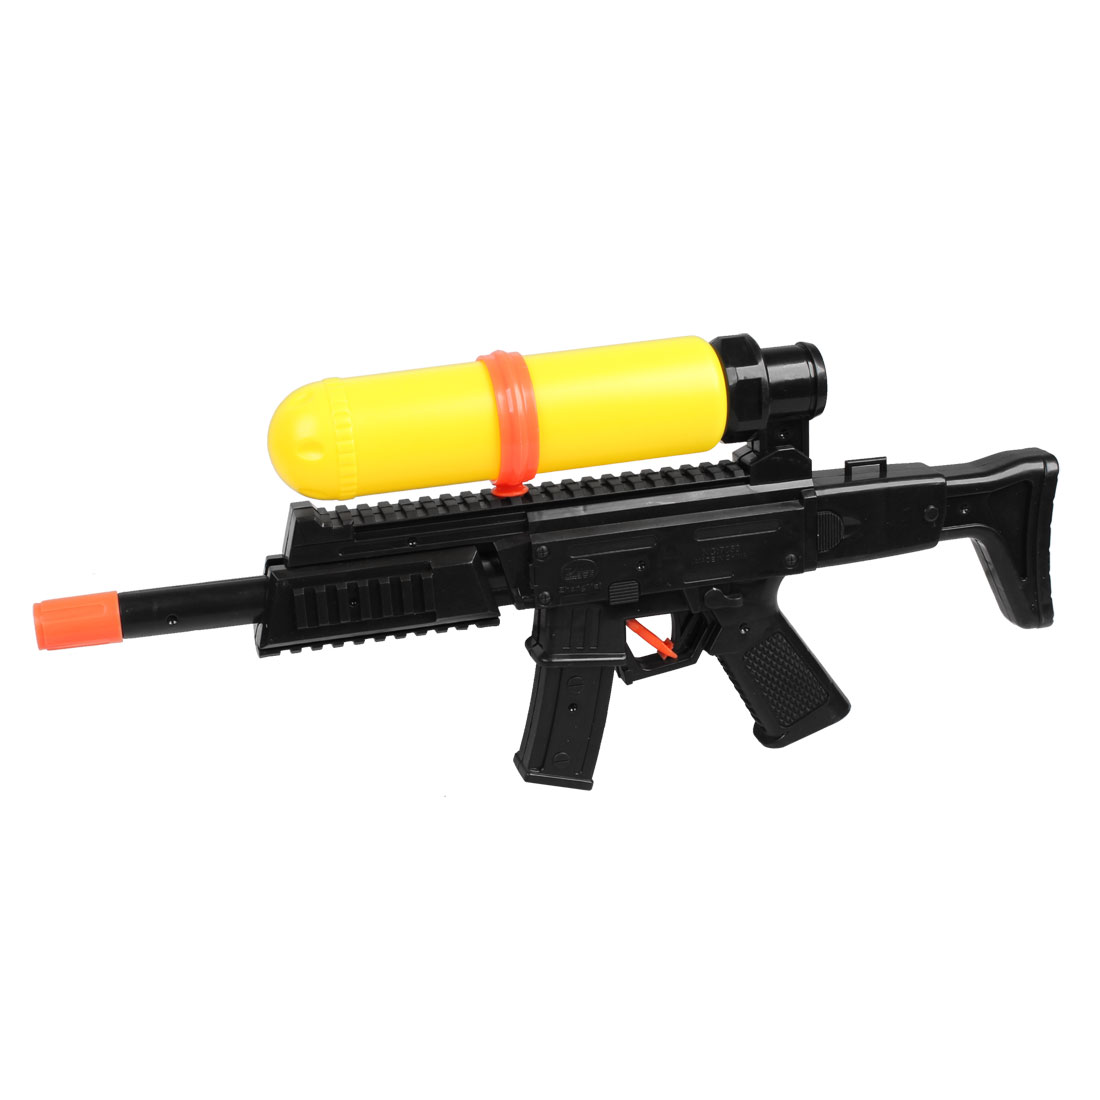 Black Yellow Plastic Single Nozzle Water Gun Squirt Toy for Children